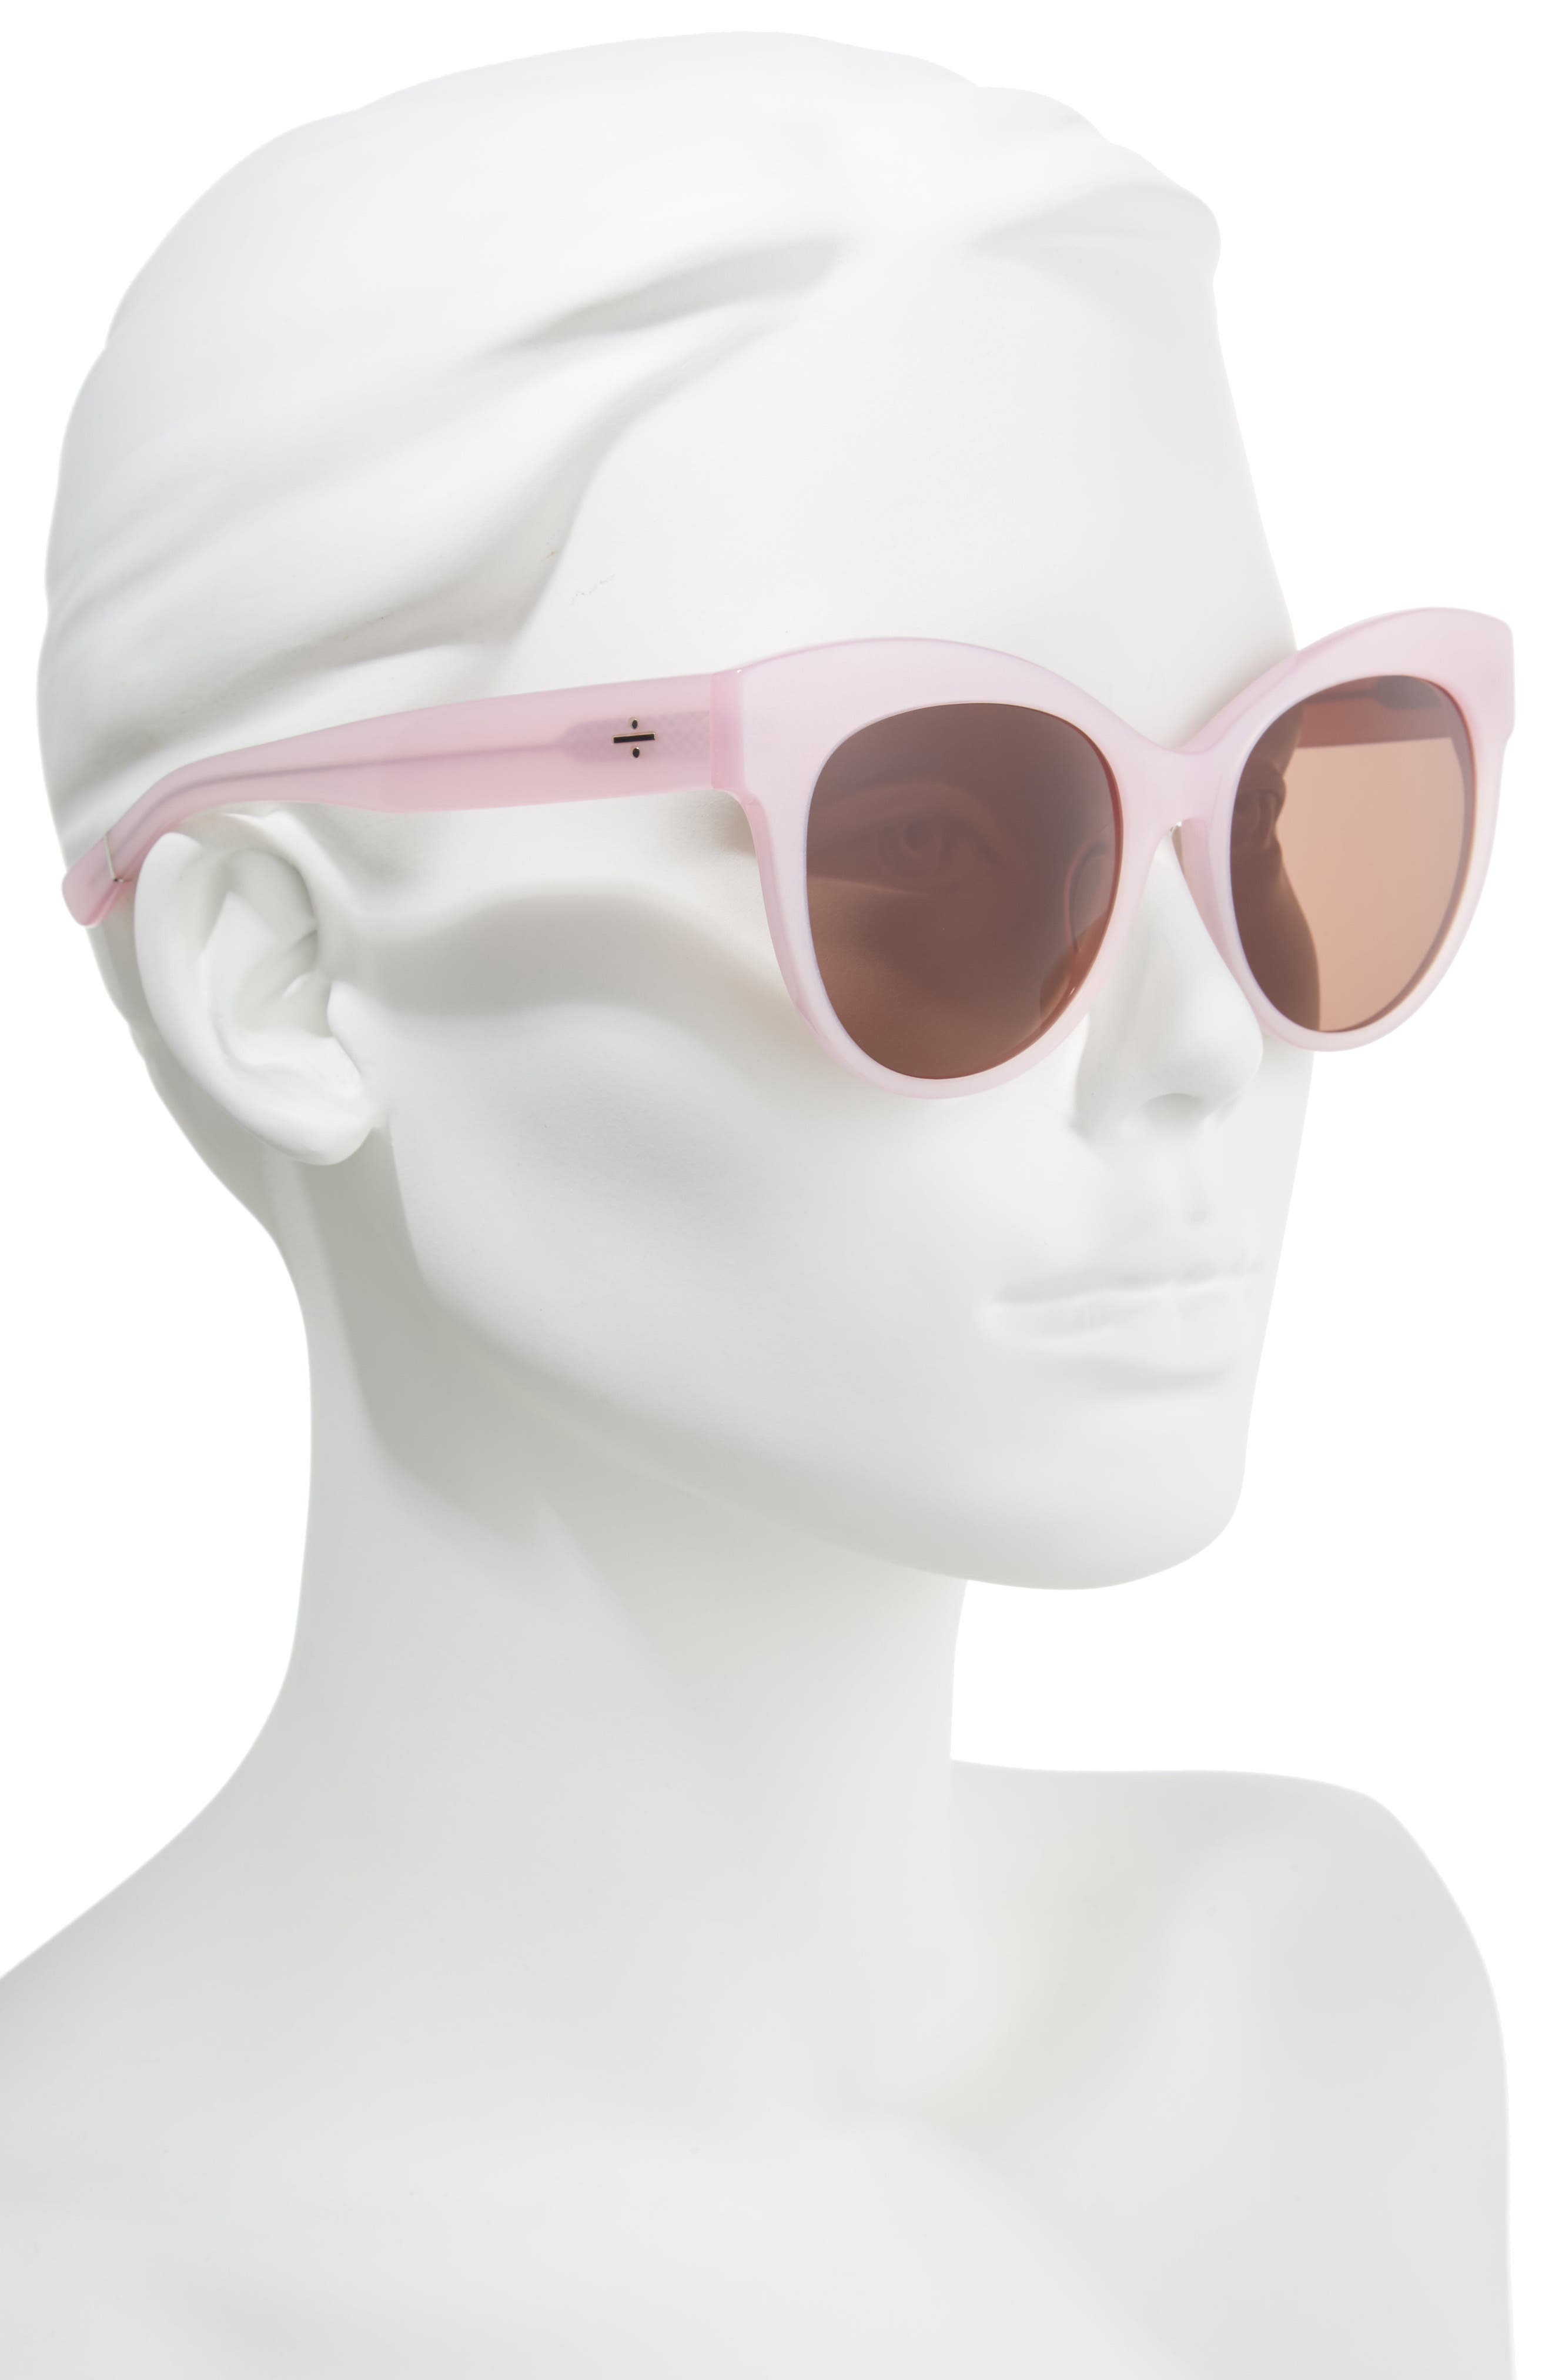 BLANC & ECLARE Paris 55mm Polarized Cat Eye Sunglasses,                             Alternate thumbnail 2, color,                             Blush